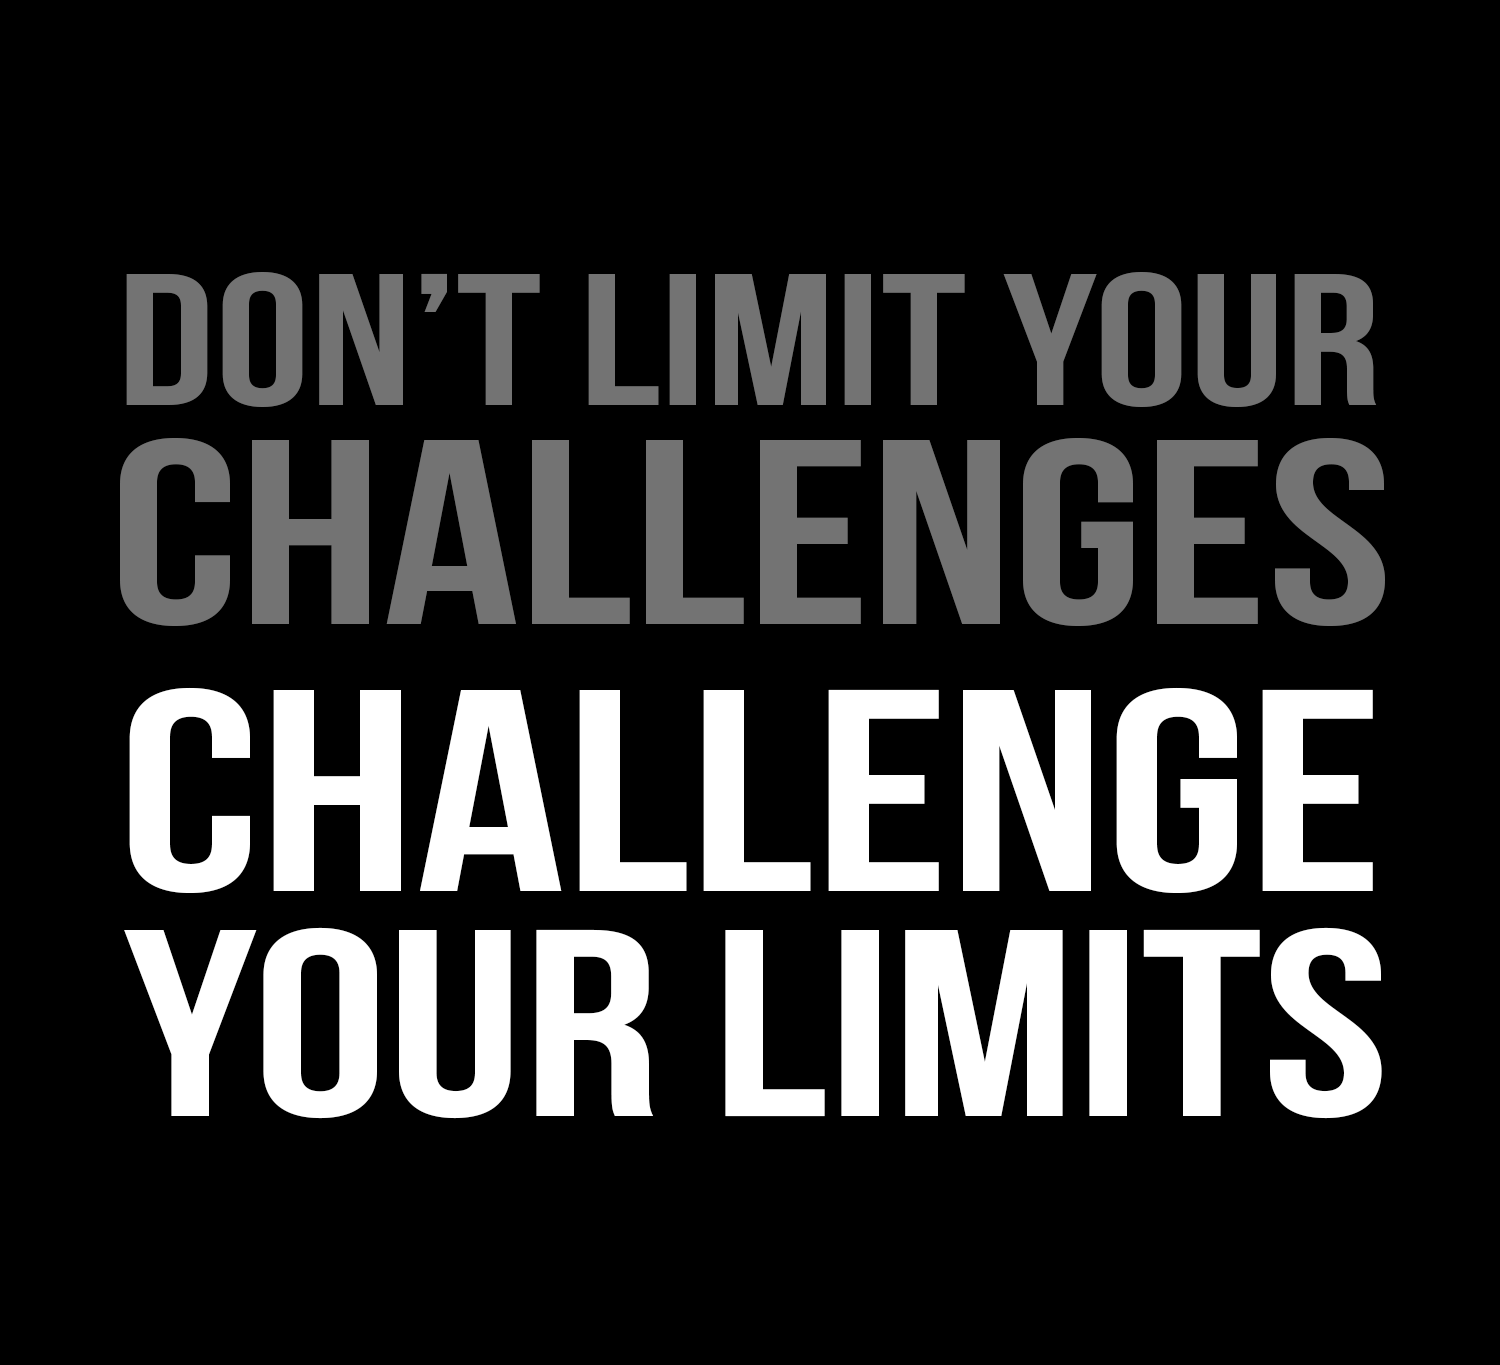 Taekwondo Quotes Don't Limit Your Challenges Challenge Your Limits  Gym